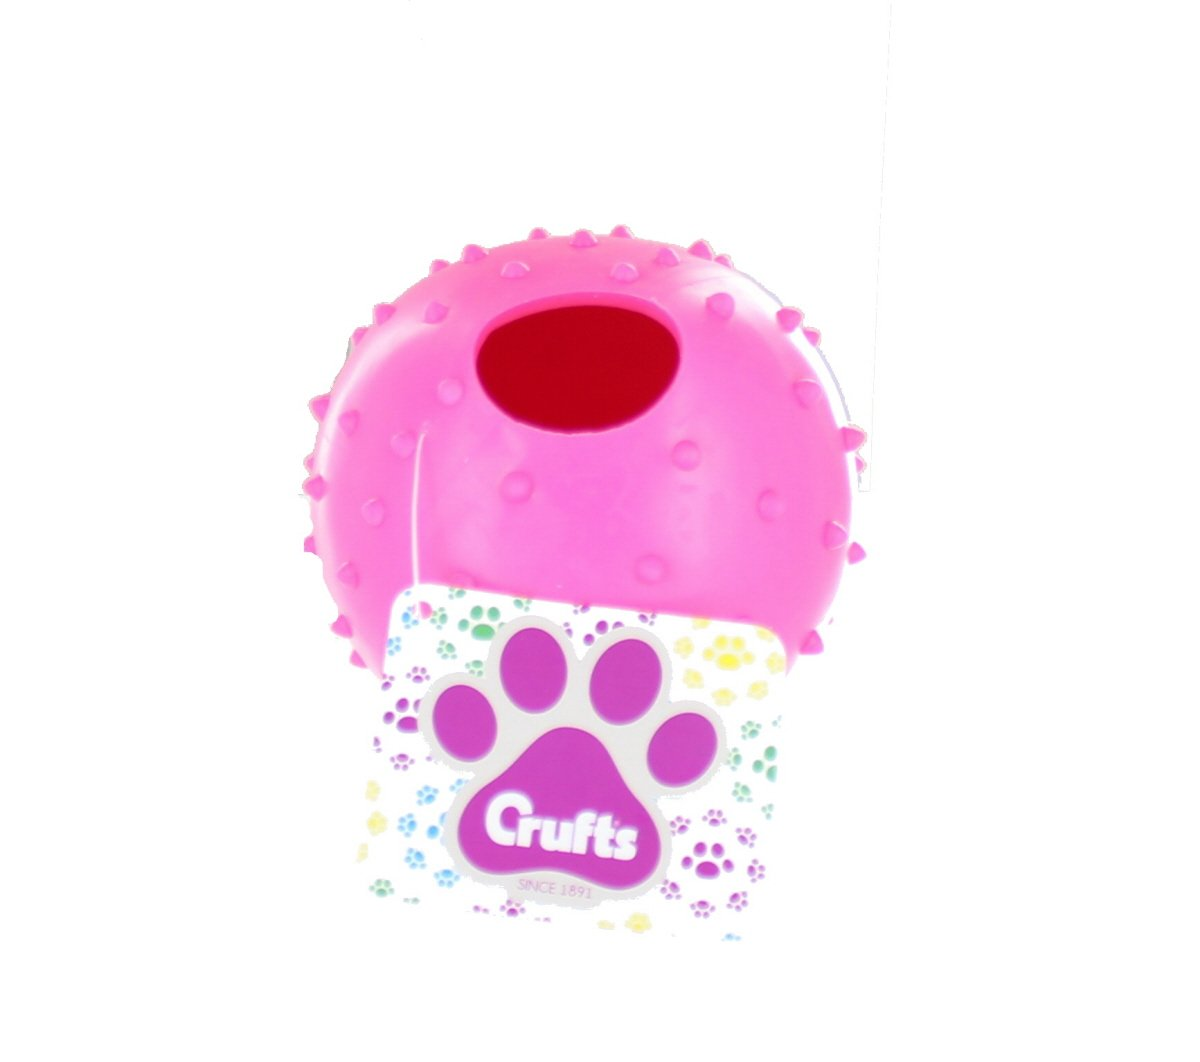 Crufts Colourful Large Rubber Dog Puppy Play & Treat Ball - 9 cm - Pink